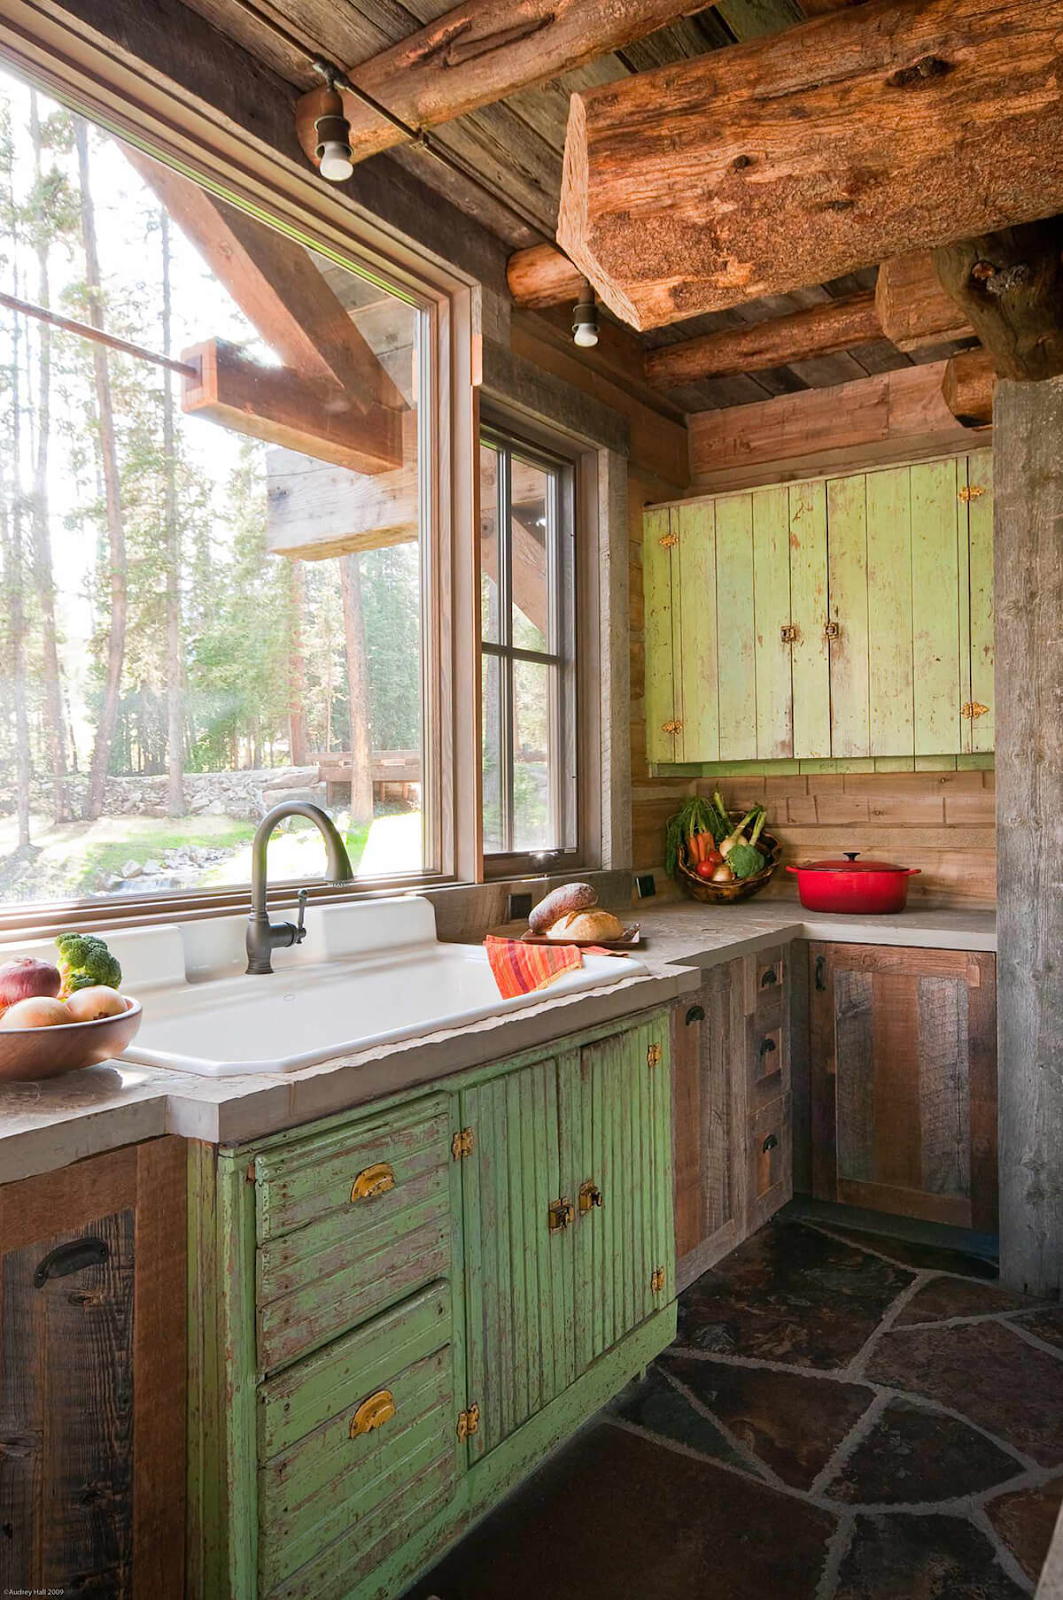 Old rustic cabin country farmhouse kitchen with mismatched green and dark wood cabinets, stone floor and farmhouse sink